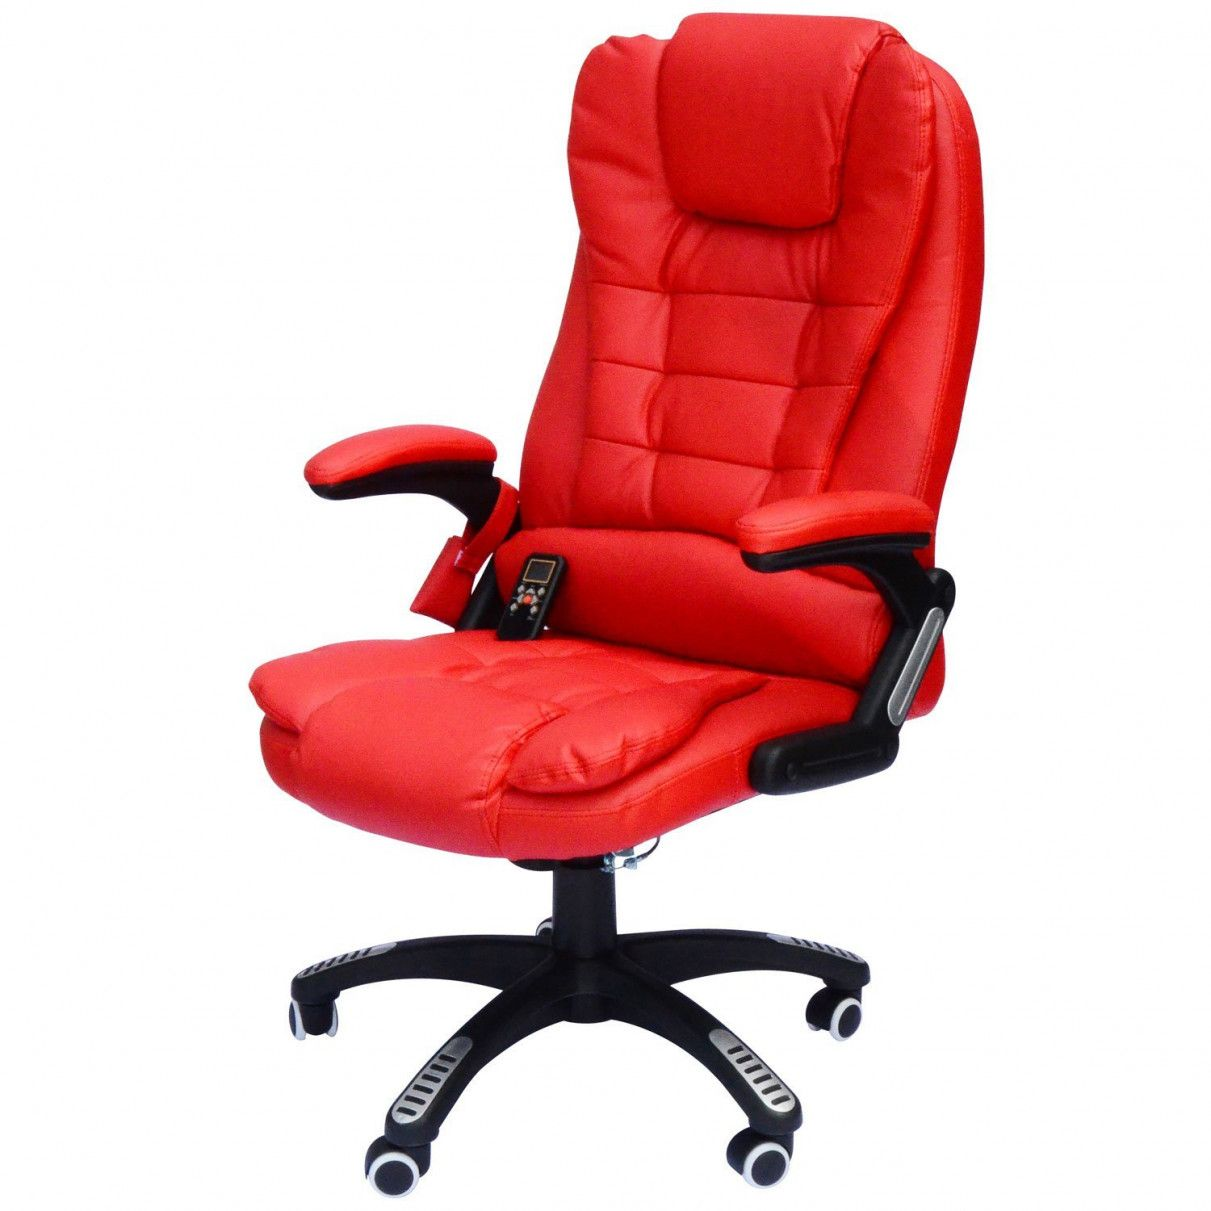 Red Leather Office Chair Expensive Home Furniture Check More At Http